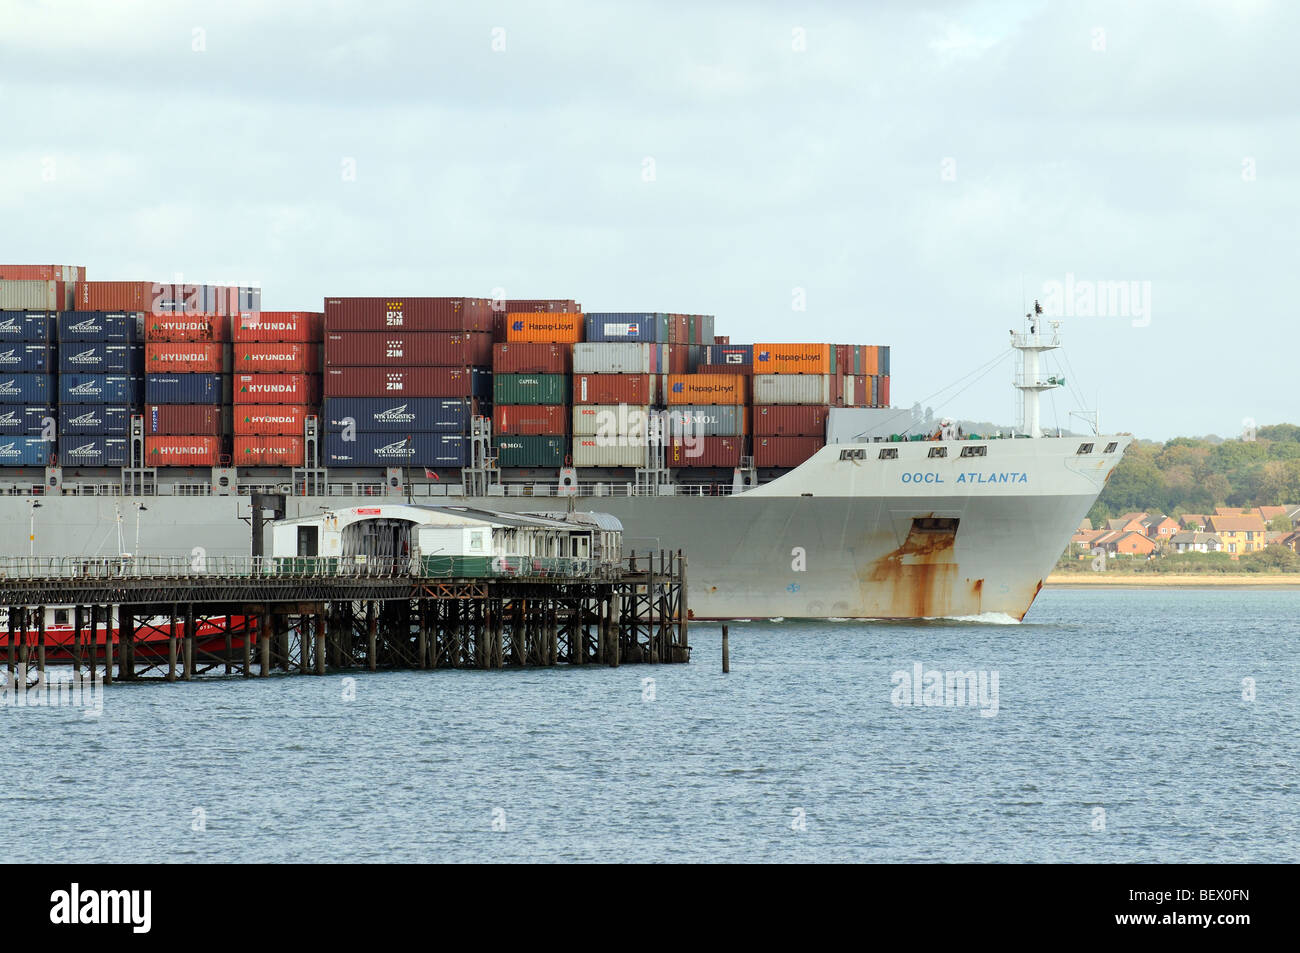 Cargo Boxes Stock Photos & Cargo Boxes Stock Images - Alamy